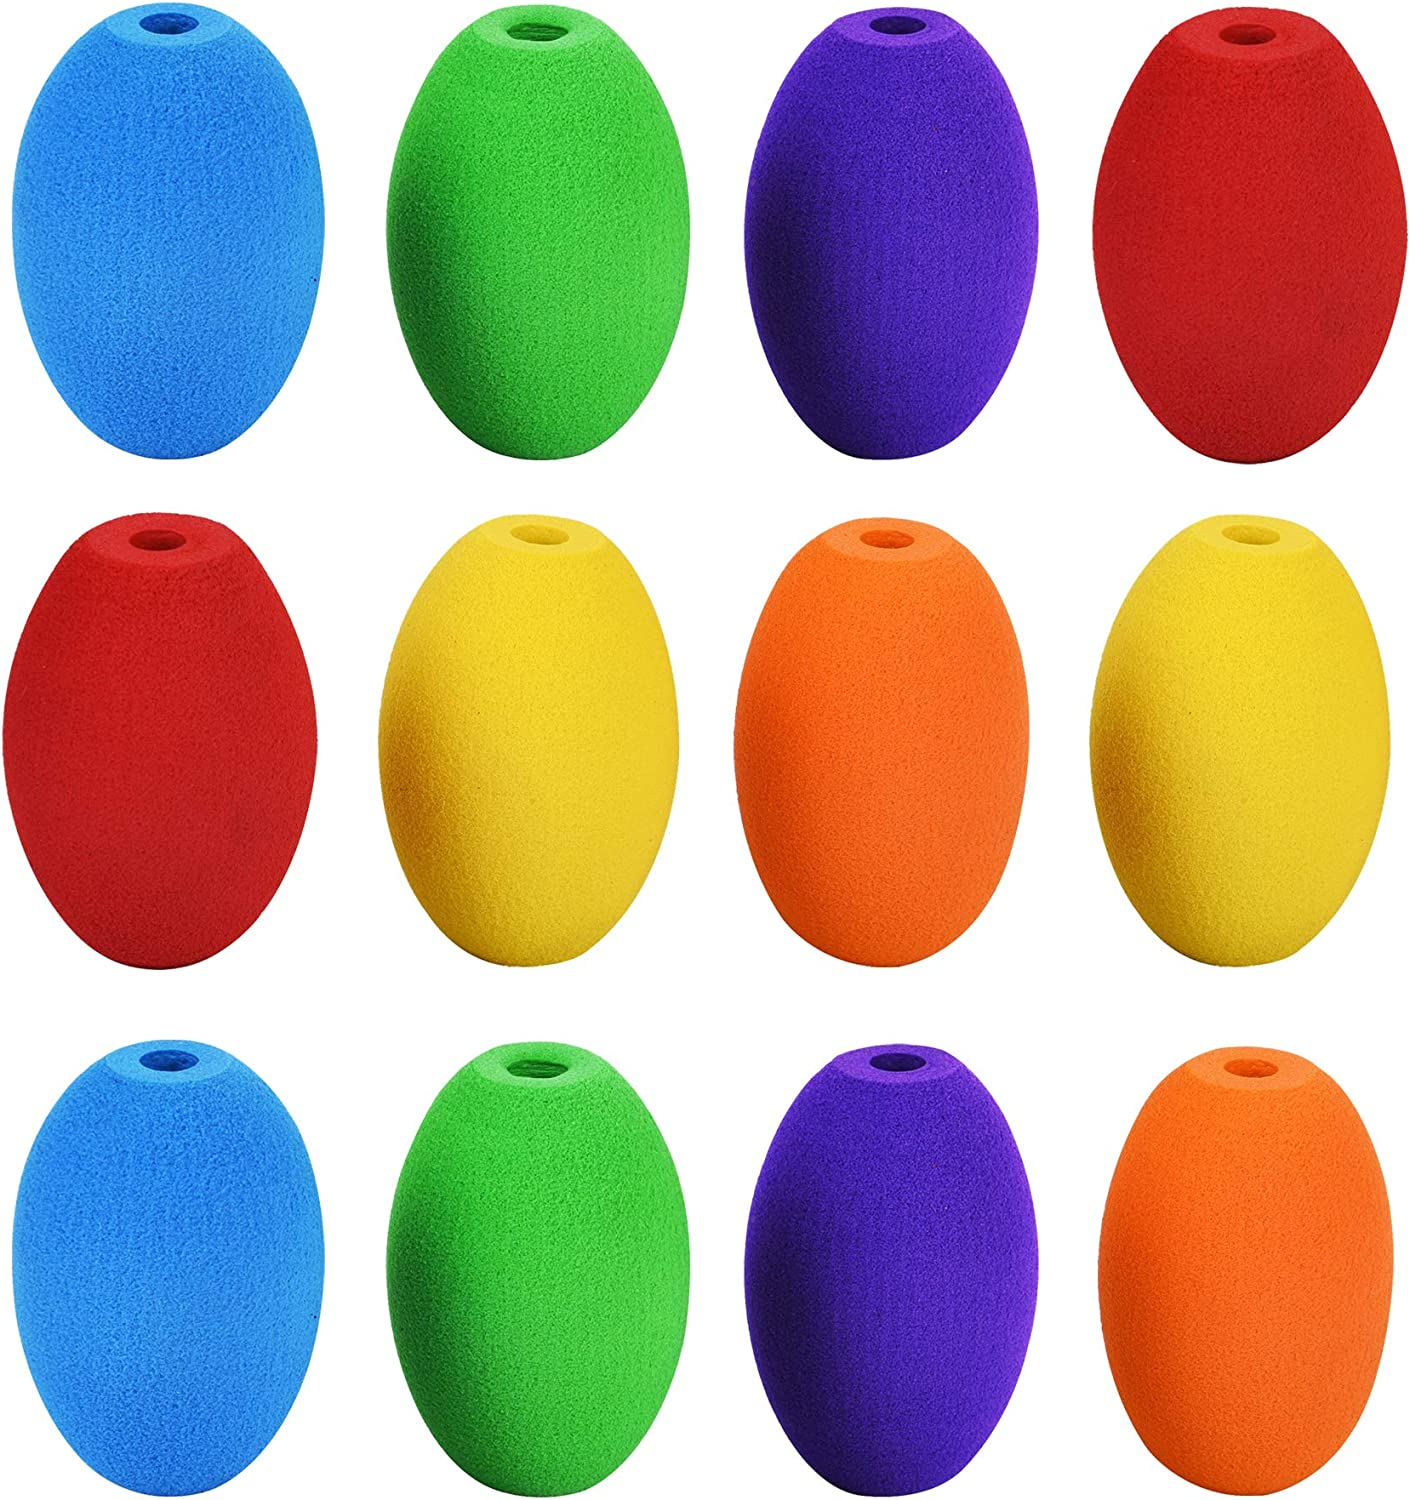 Special Supplies Egg Department Quantity limited store Pen-Pencil Grips Kids for Adults and Colorf